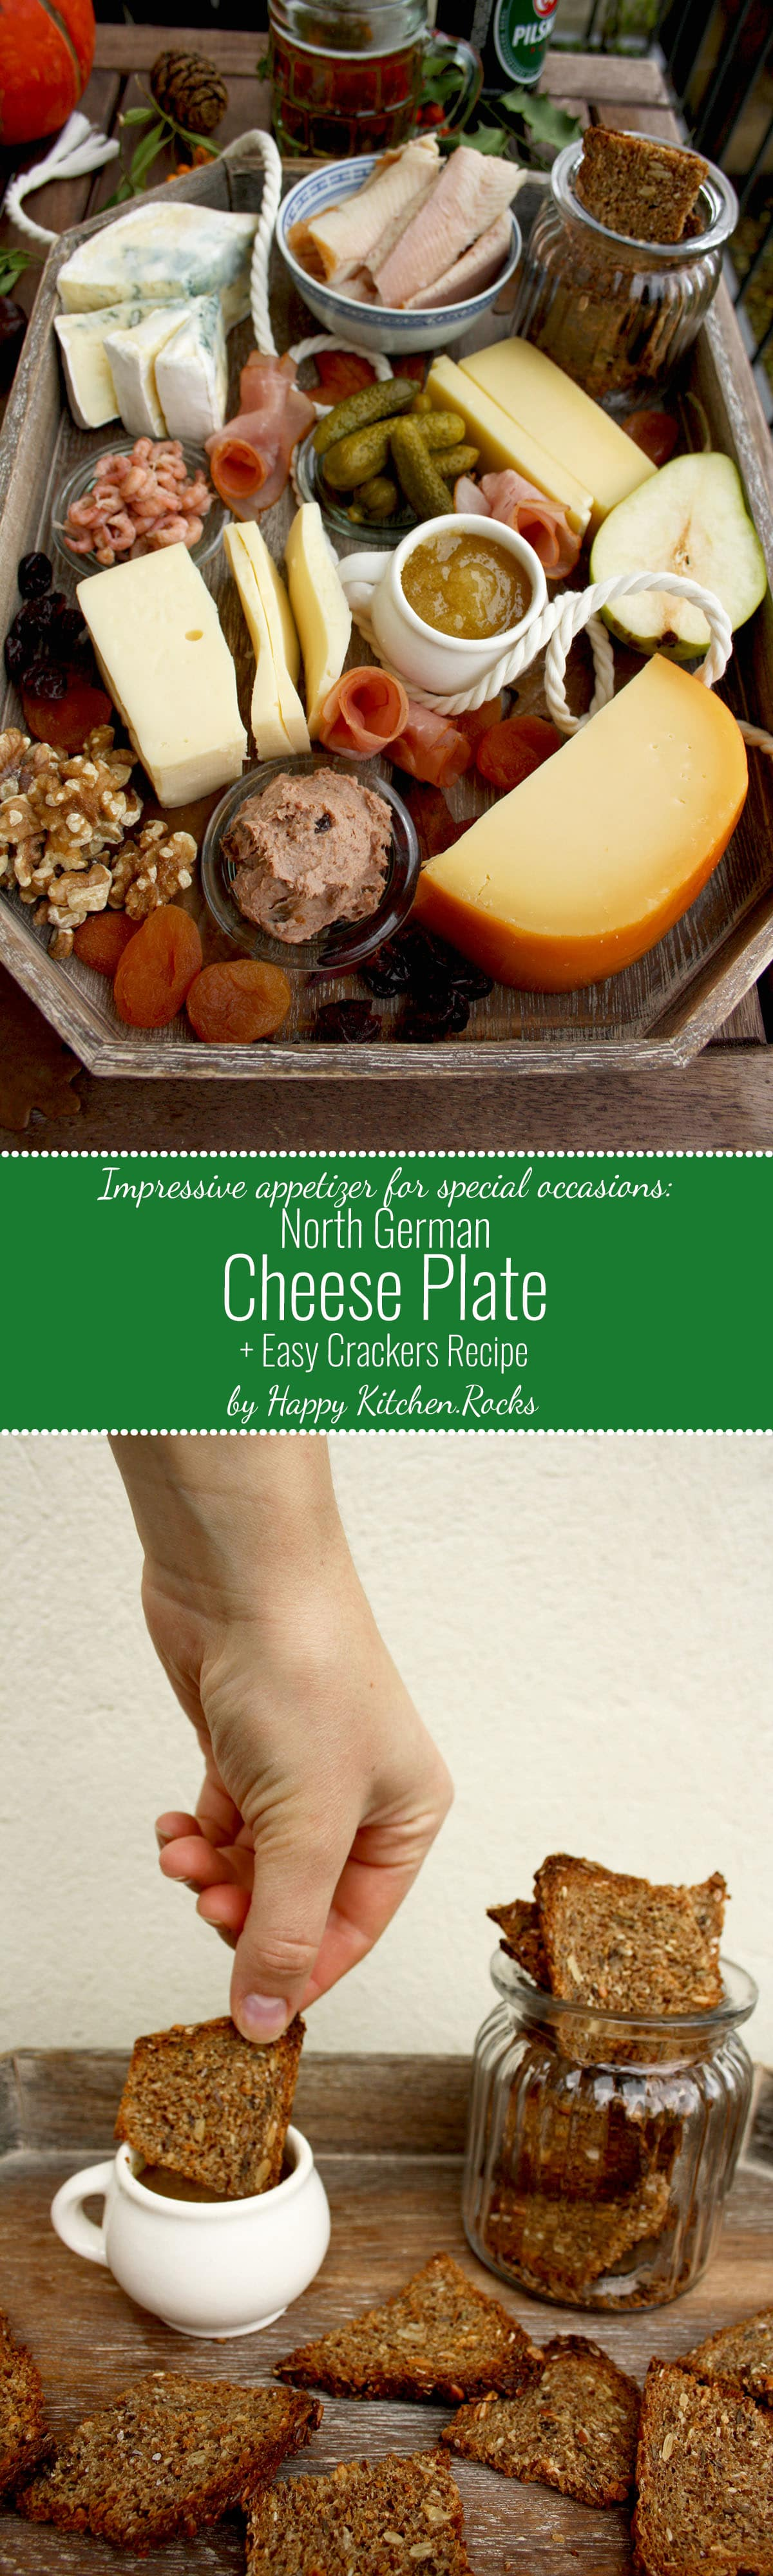 North German Cheese Plate and Easy Crackers Recipe effortless and impressive appetizers and cheeses & North German Cheese Plate and Easy Crackers Recipe \u2022 Happy Kitchen.Rocks